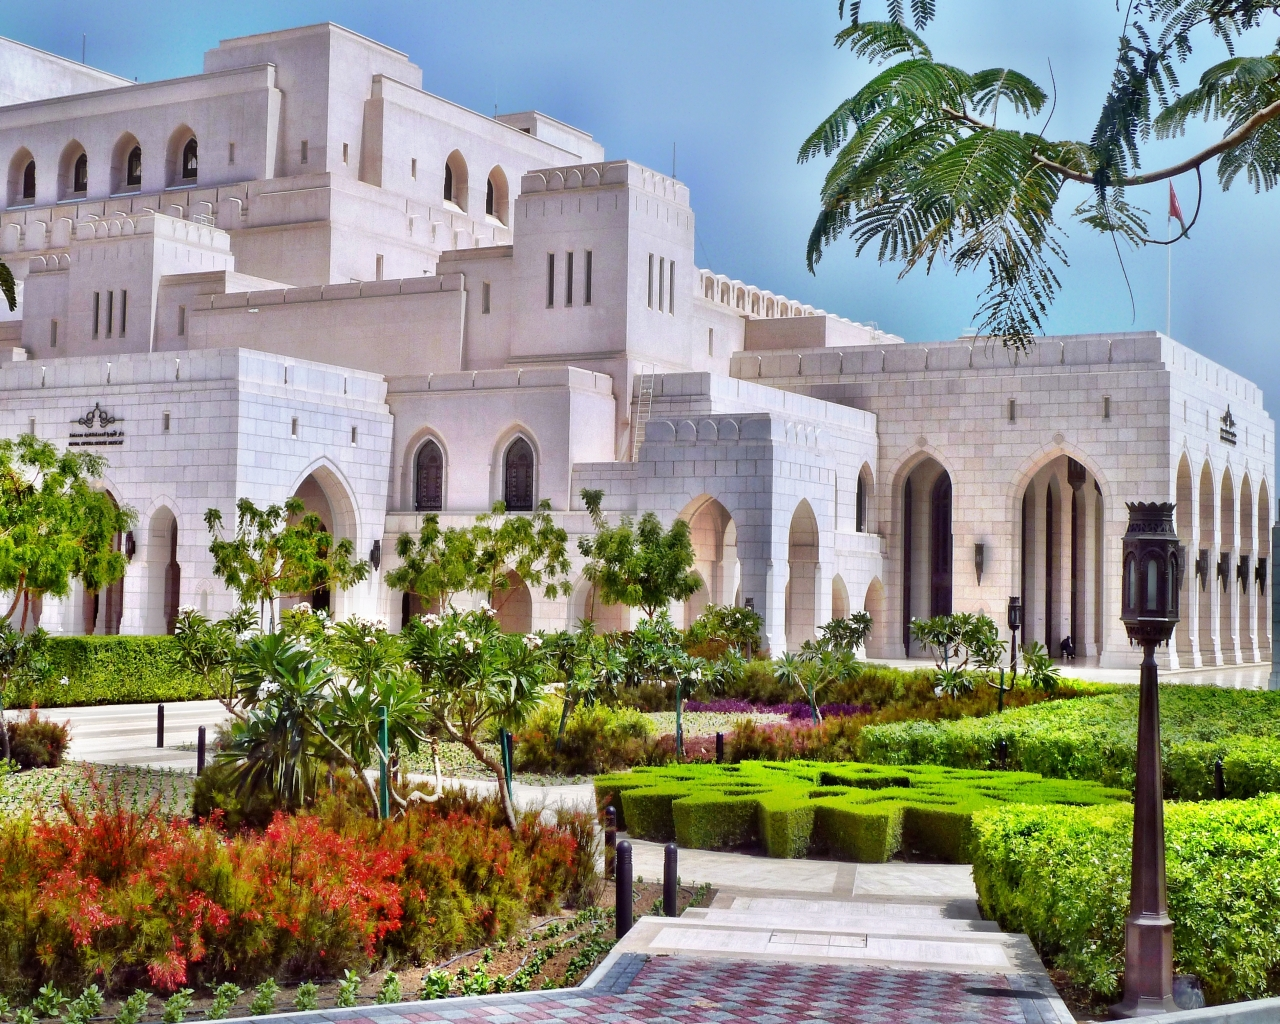 The opera house in Muscat. (Photo: Disvovery Reisen)